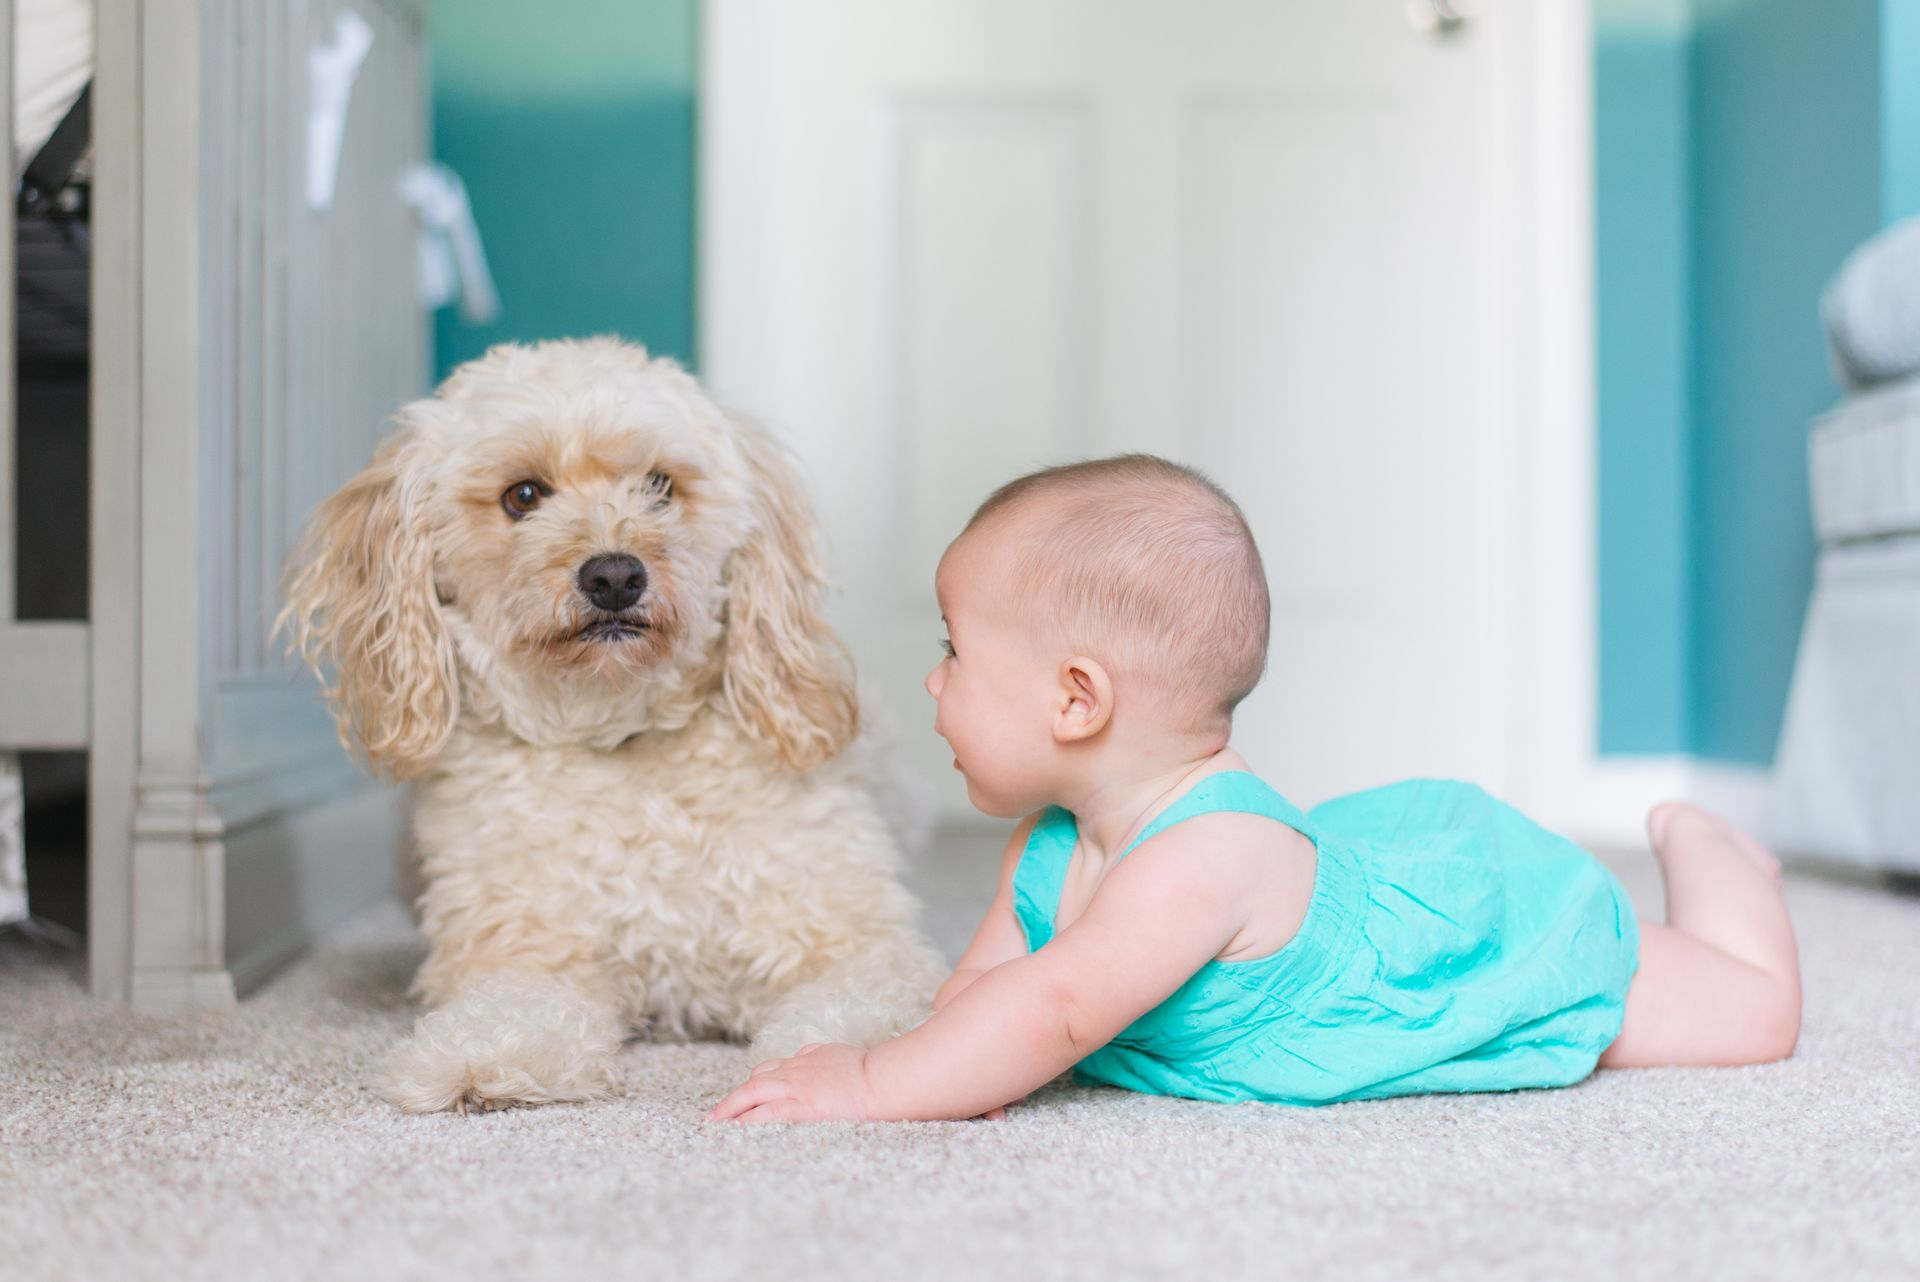 The Pro's in Carpet cleaning services. If your home carpet has pet orders call us to leave your home smelling fresh again.